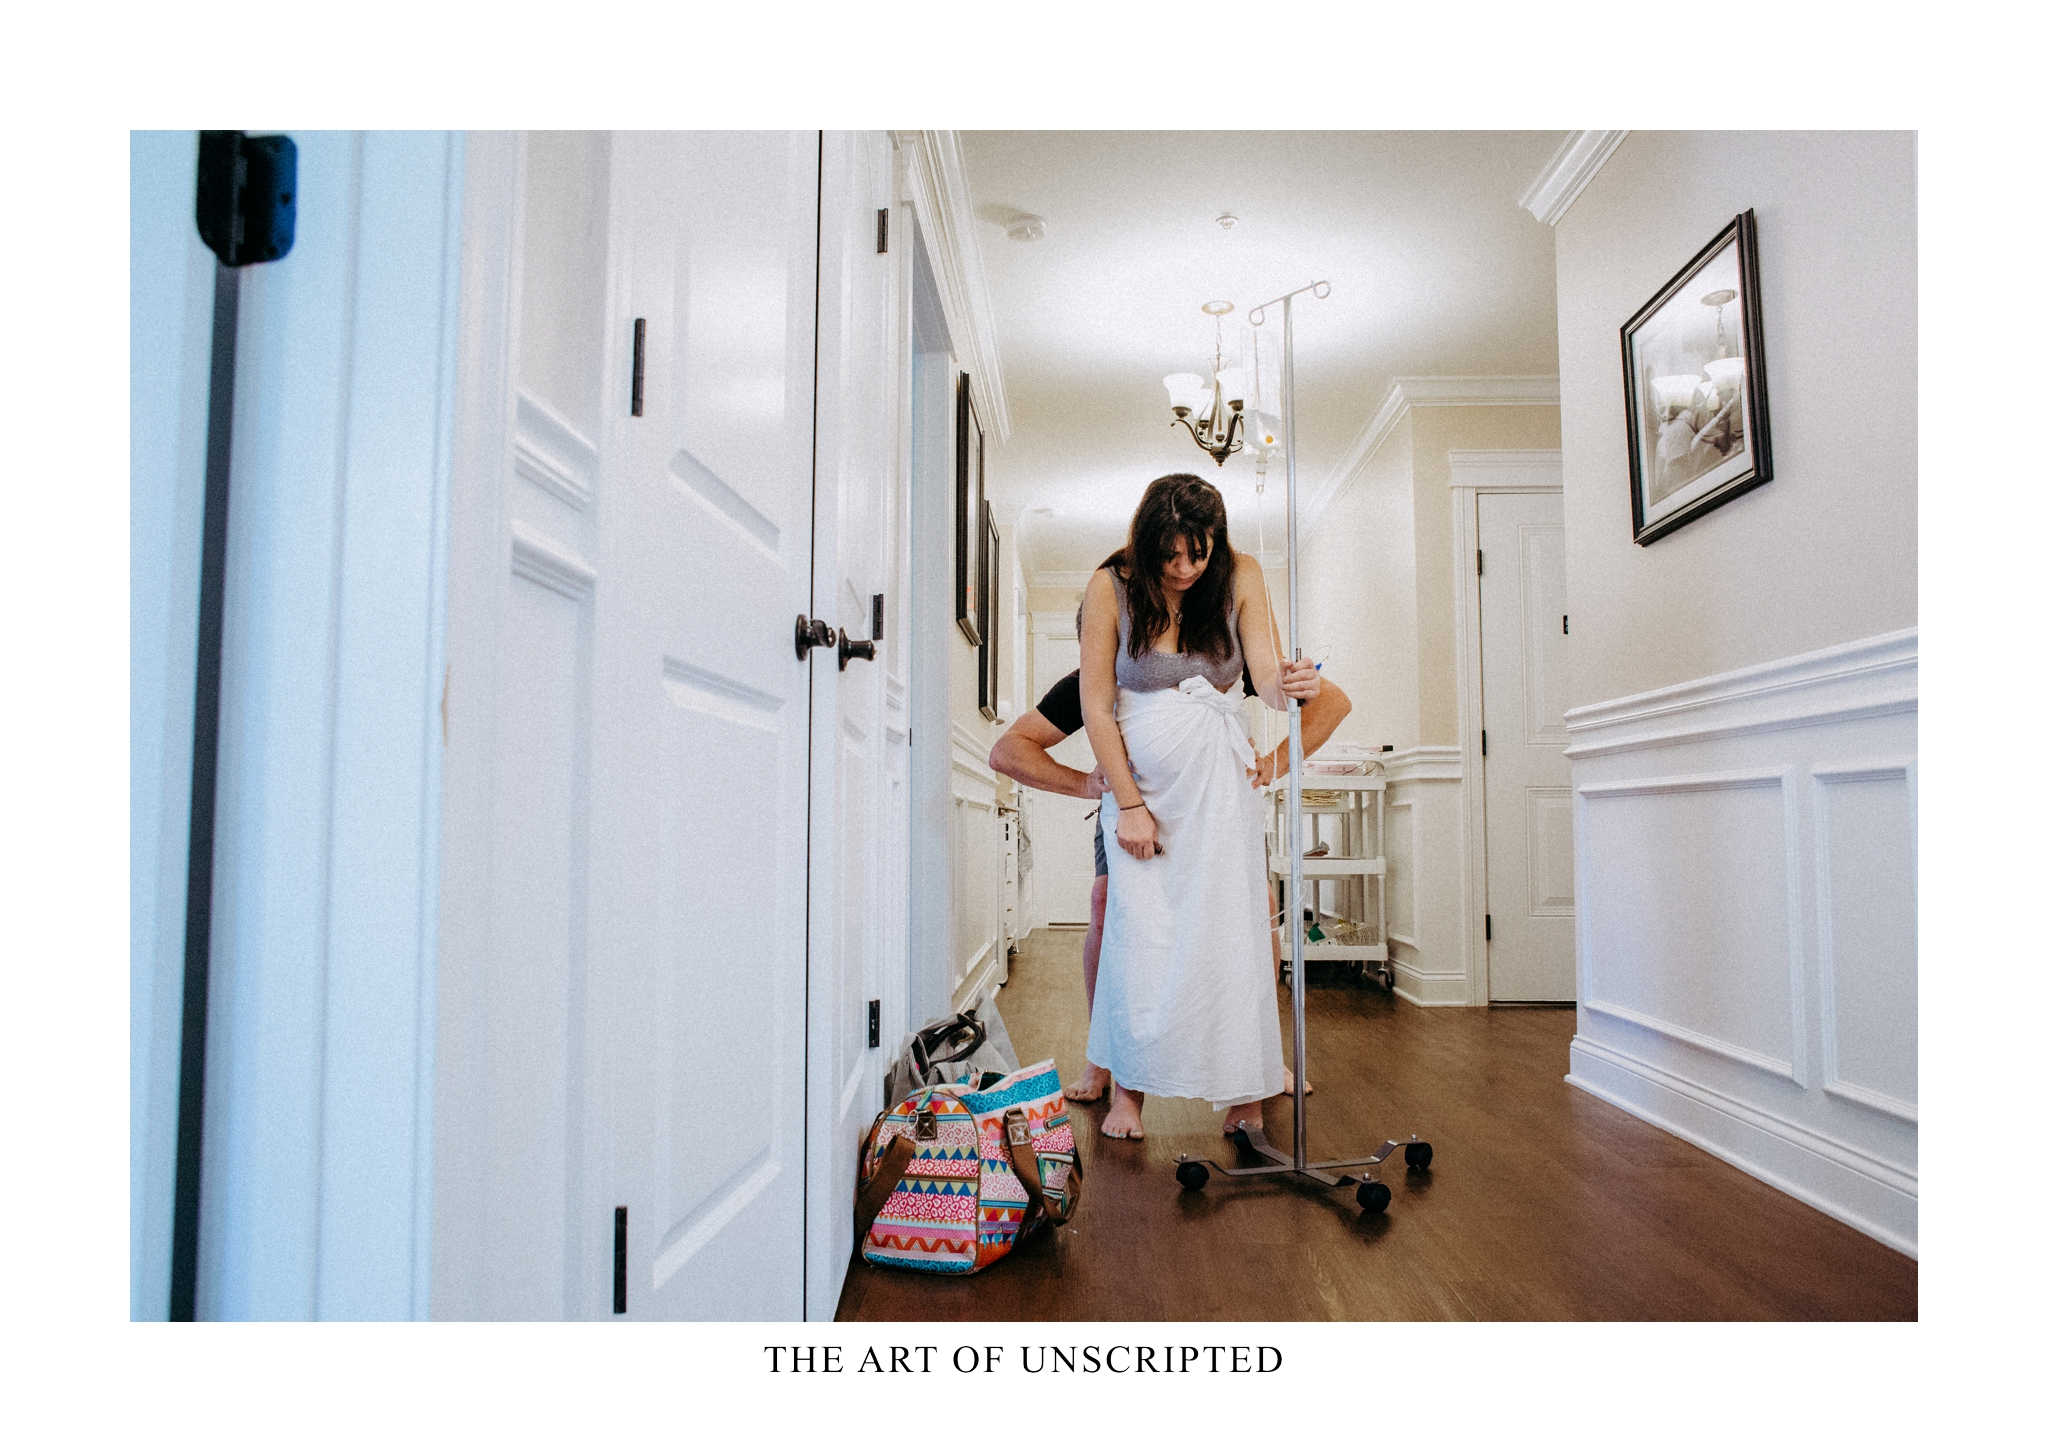 2017-06-10_133057__THE ART OF UNSCRIPTED_SPRINGFIELD MO_BIRTH PHOTOGRAPHER_ DOCUMENTARY_STORYTELLING_417_PHOTOGRAPHER